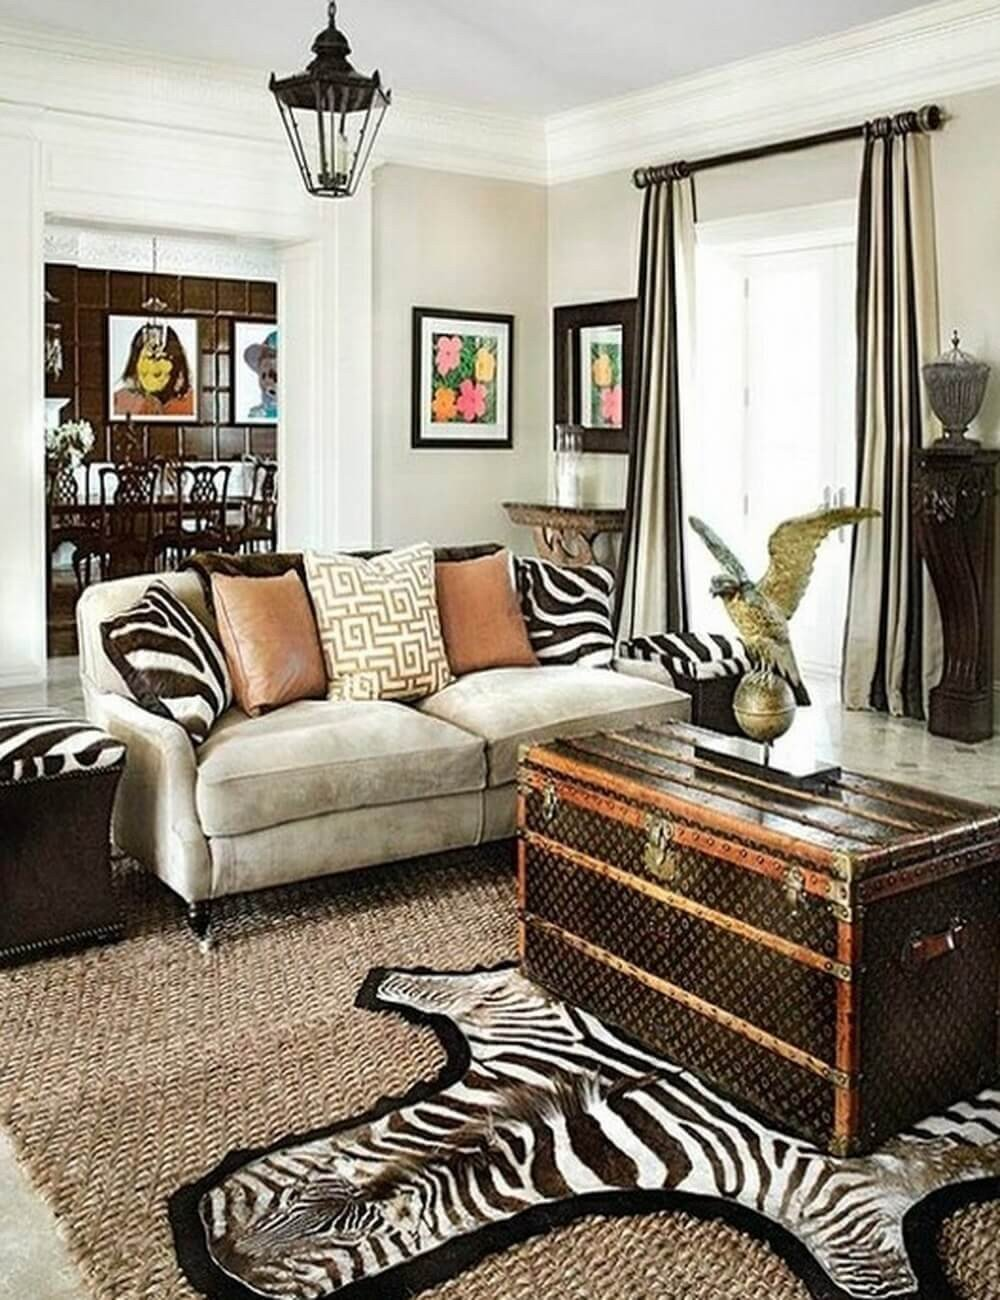 Animal Print Furniture Home Decor Fresh Make Your Rooms Look Fierce and Wild by Using Zebra Print